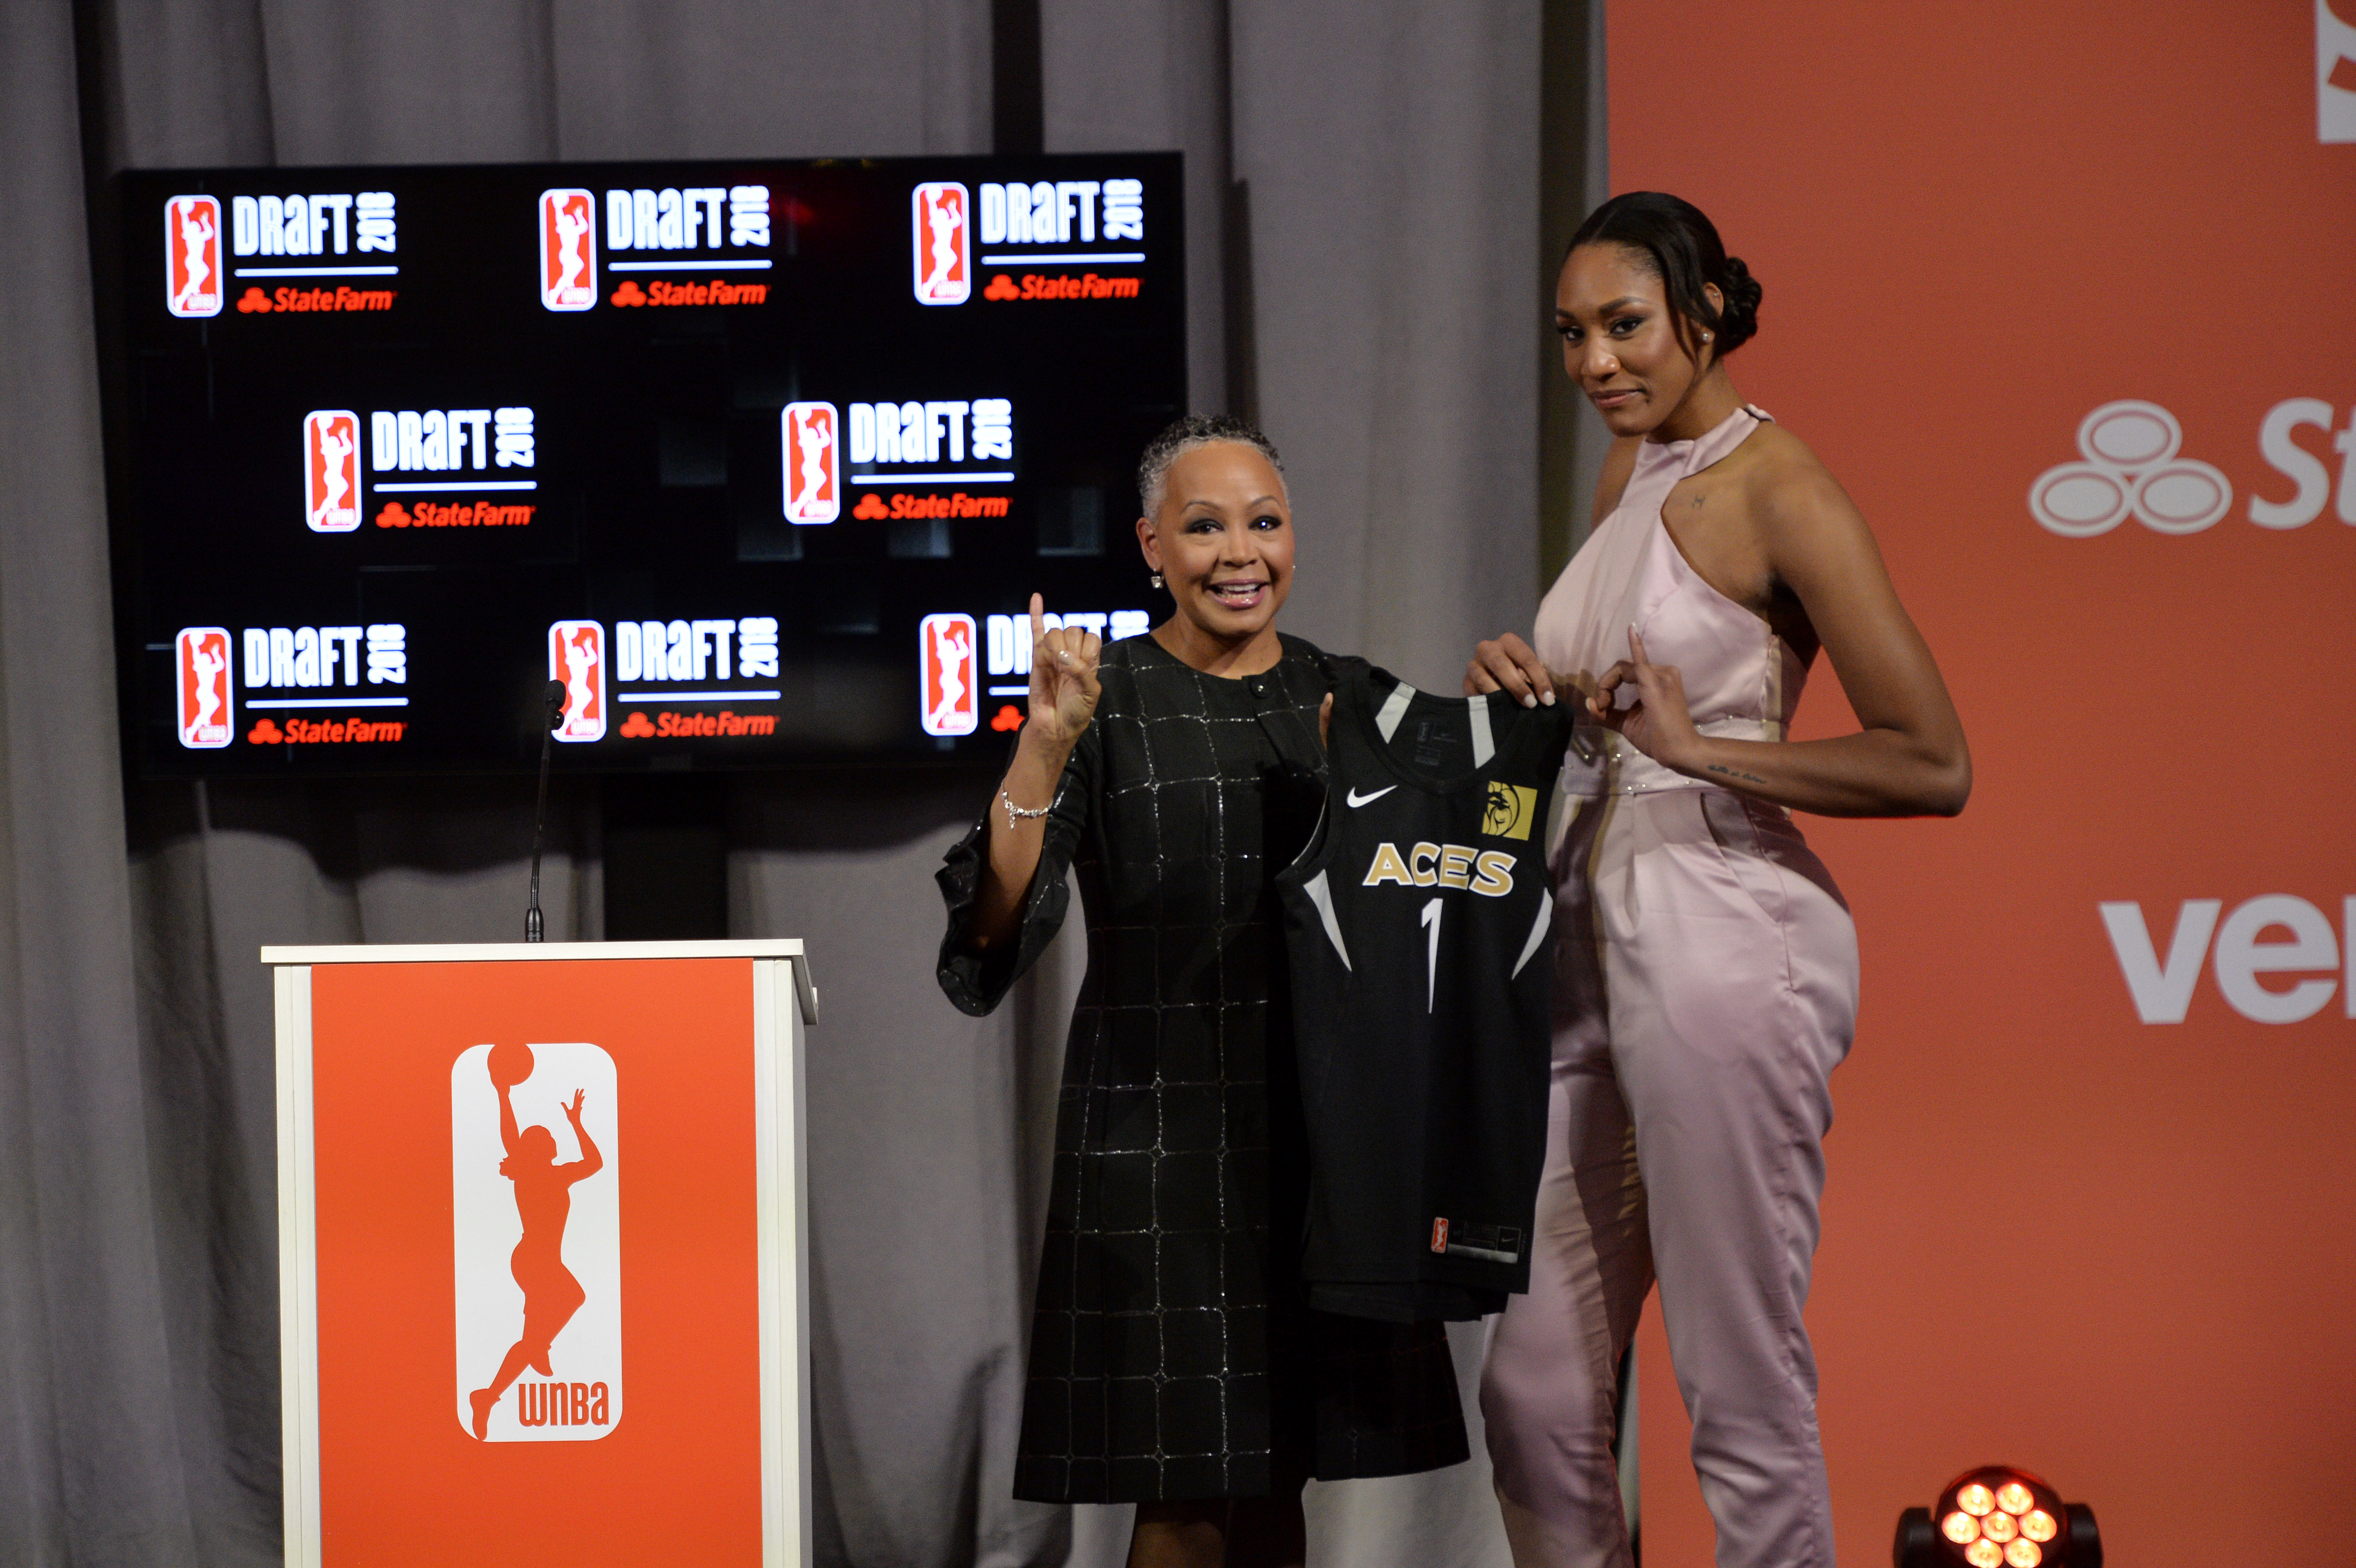 After a stellar college career, A'ja Wilson is first pick in 2018 WNBA Draft, already thinking about ways to improve her game